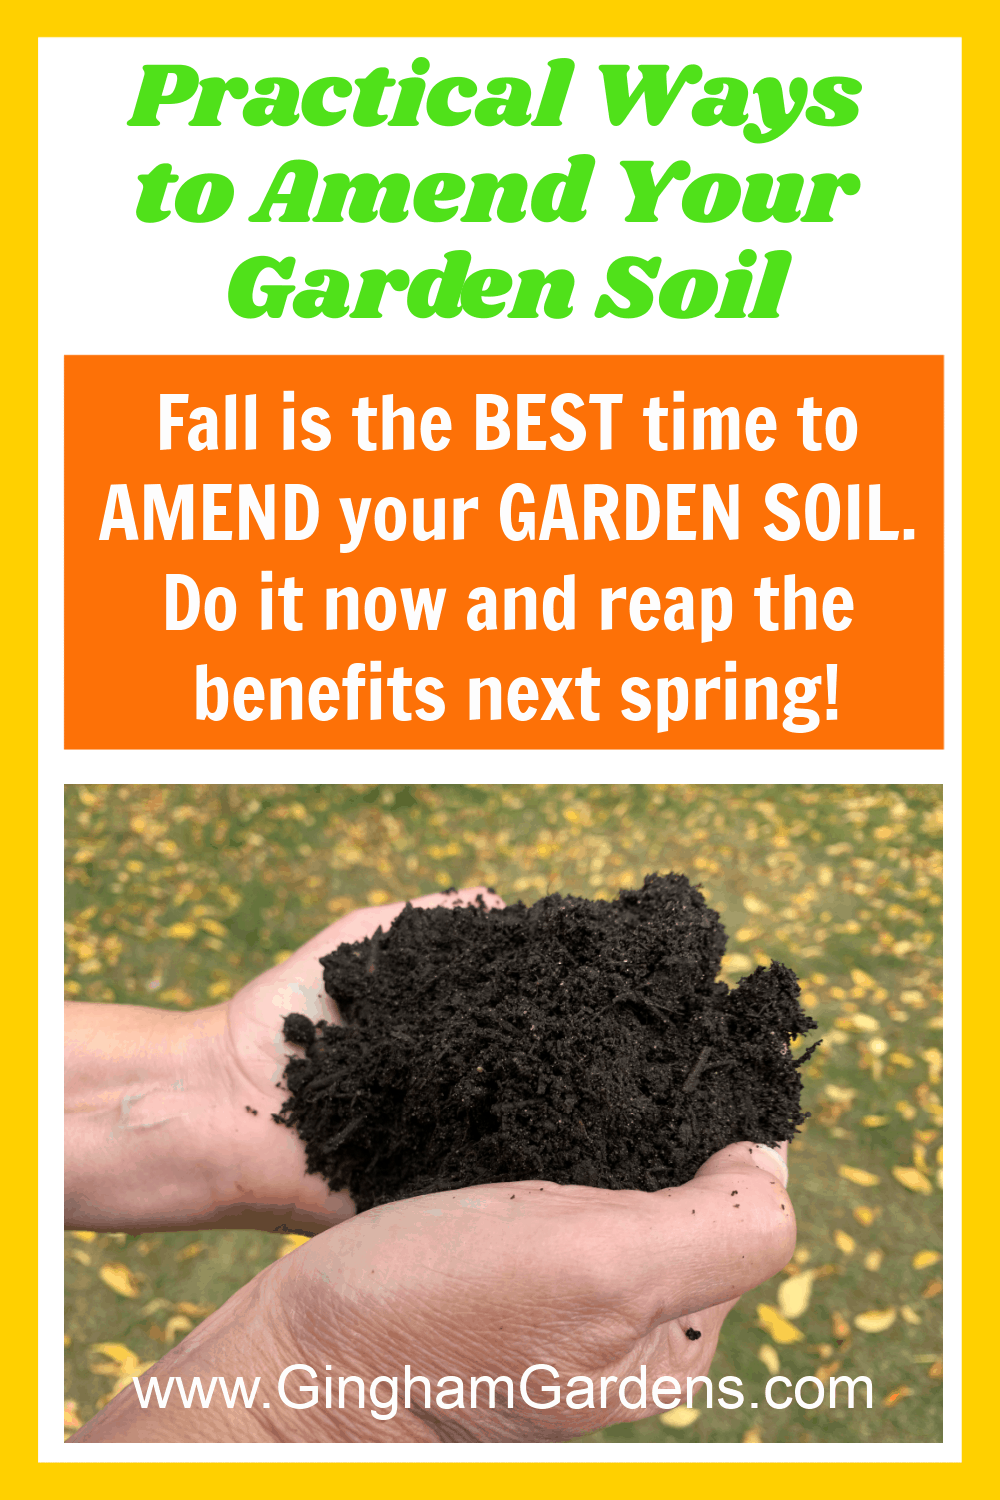 Image of gardener's hands holding compost with text overlay - Practical Tips to Amend Your Garden Soil